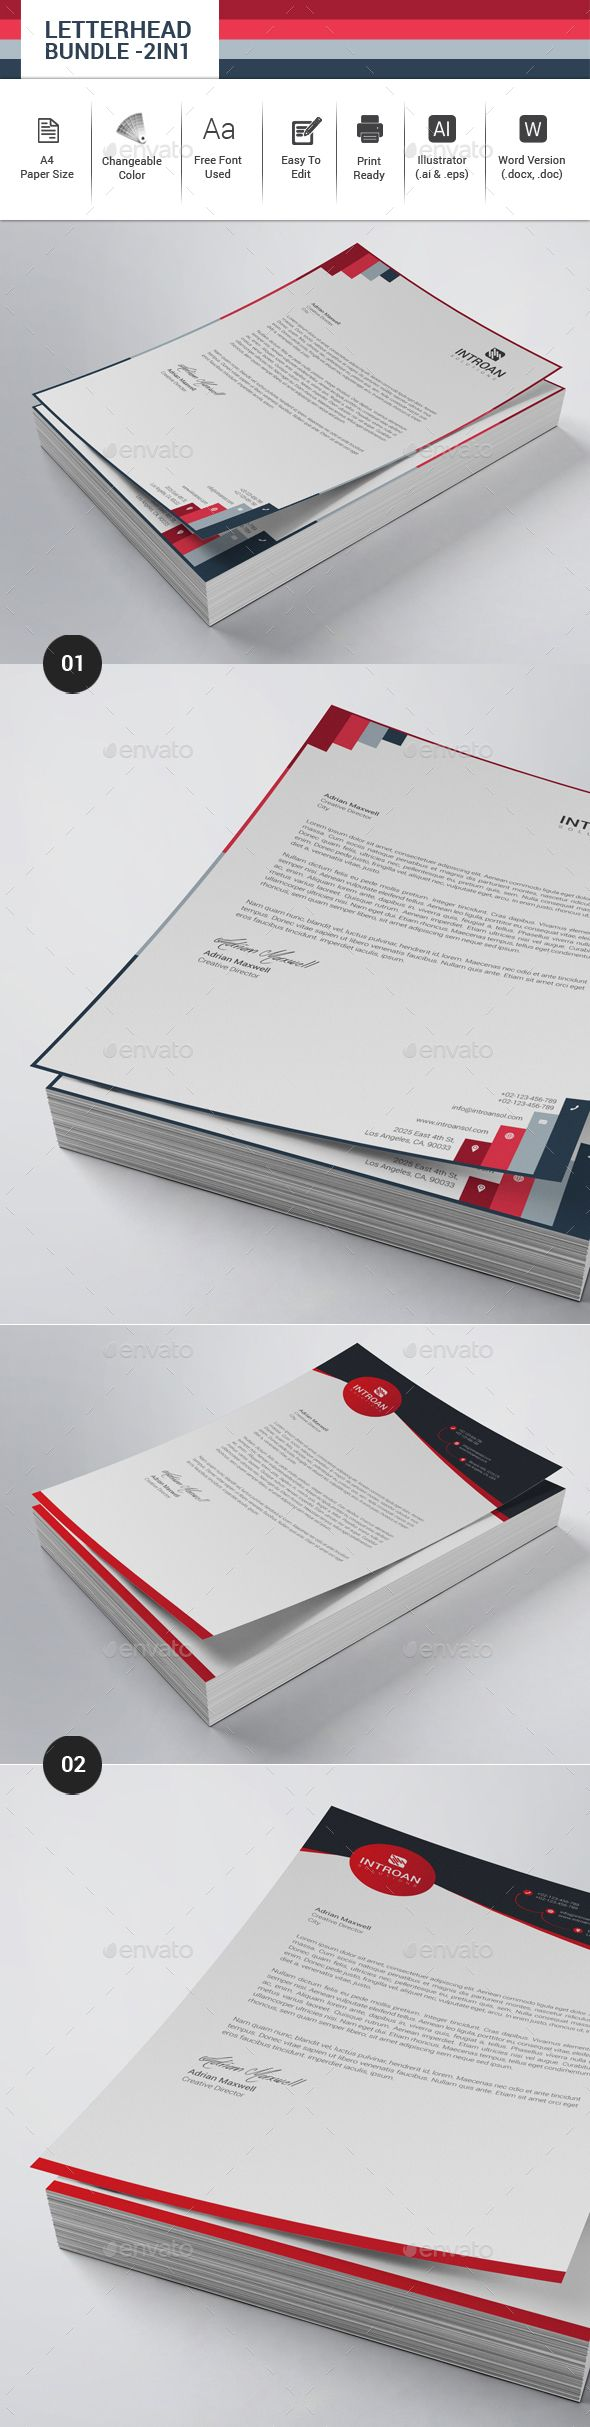 Letterhead Design Bundle - 2in1 - Stationery Template Vector EPS, Vector AI. Download here: http://graphicriver.net/item/letterhead-bundle-2in1/16435302?s_rank=144&ref=yinkira